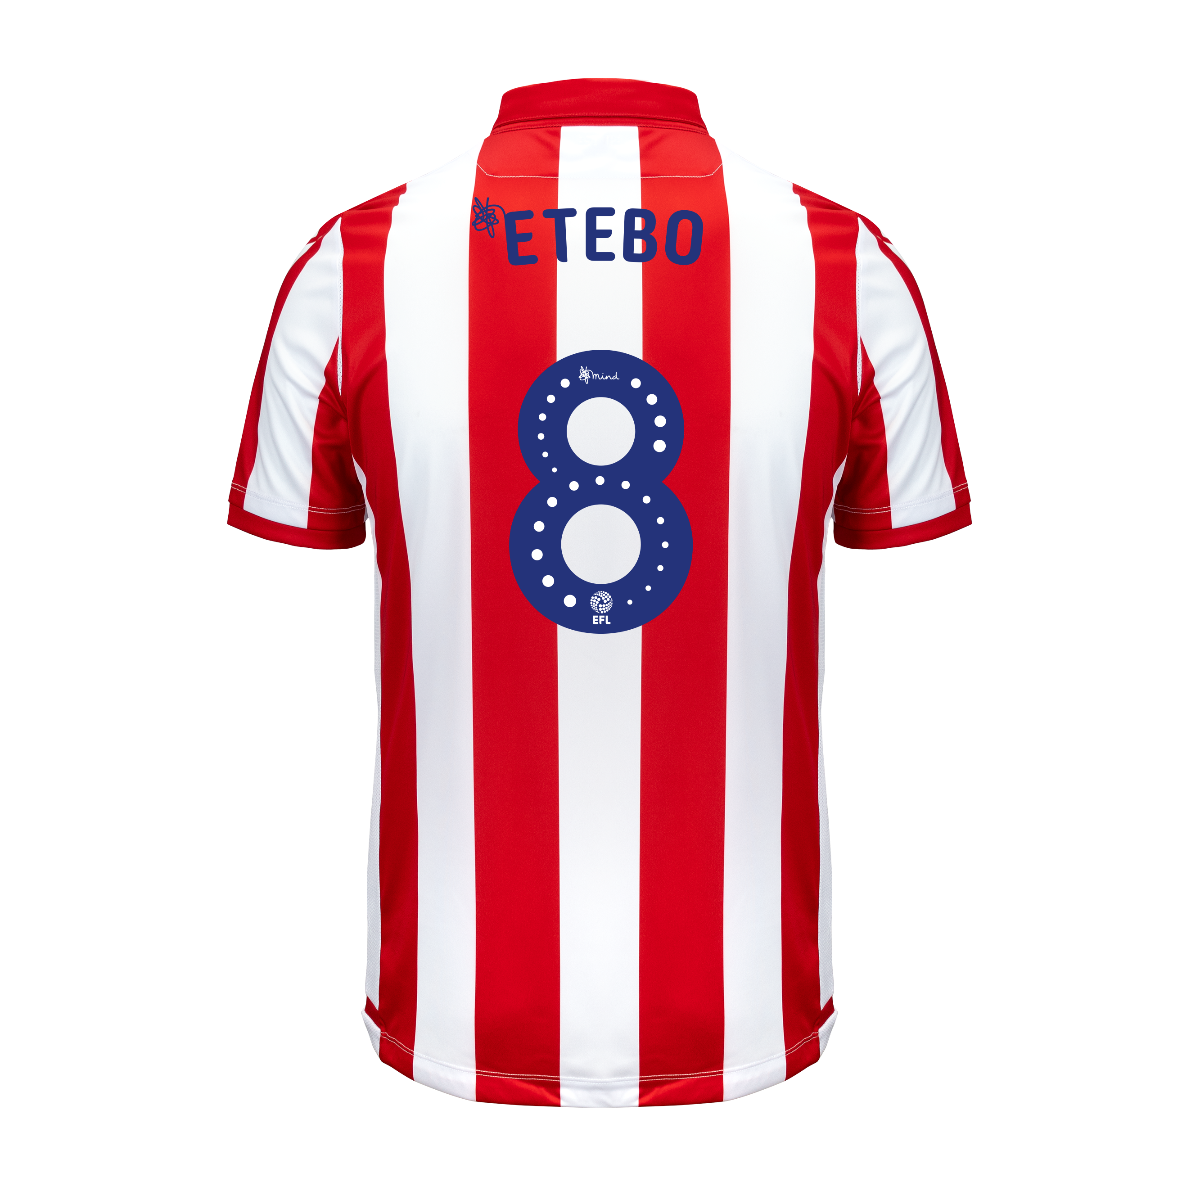 2019/20 Adult Home SS Shirt - Etebo